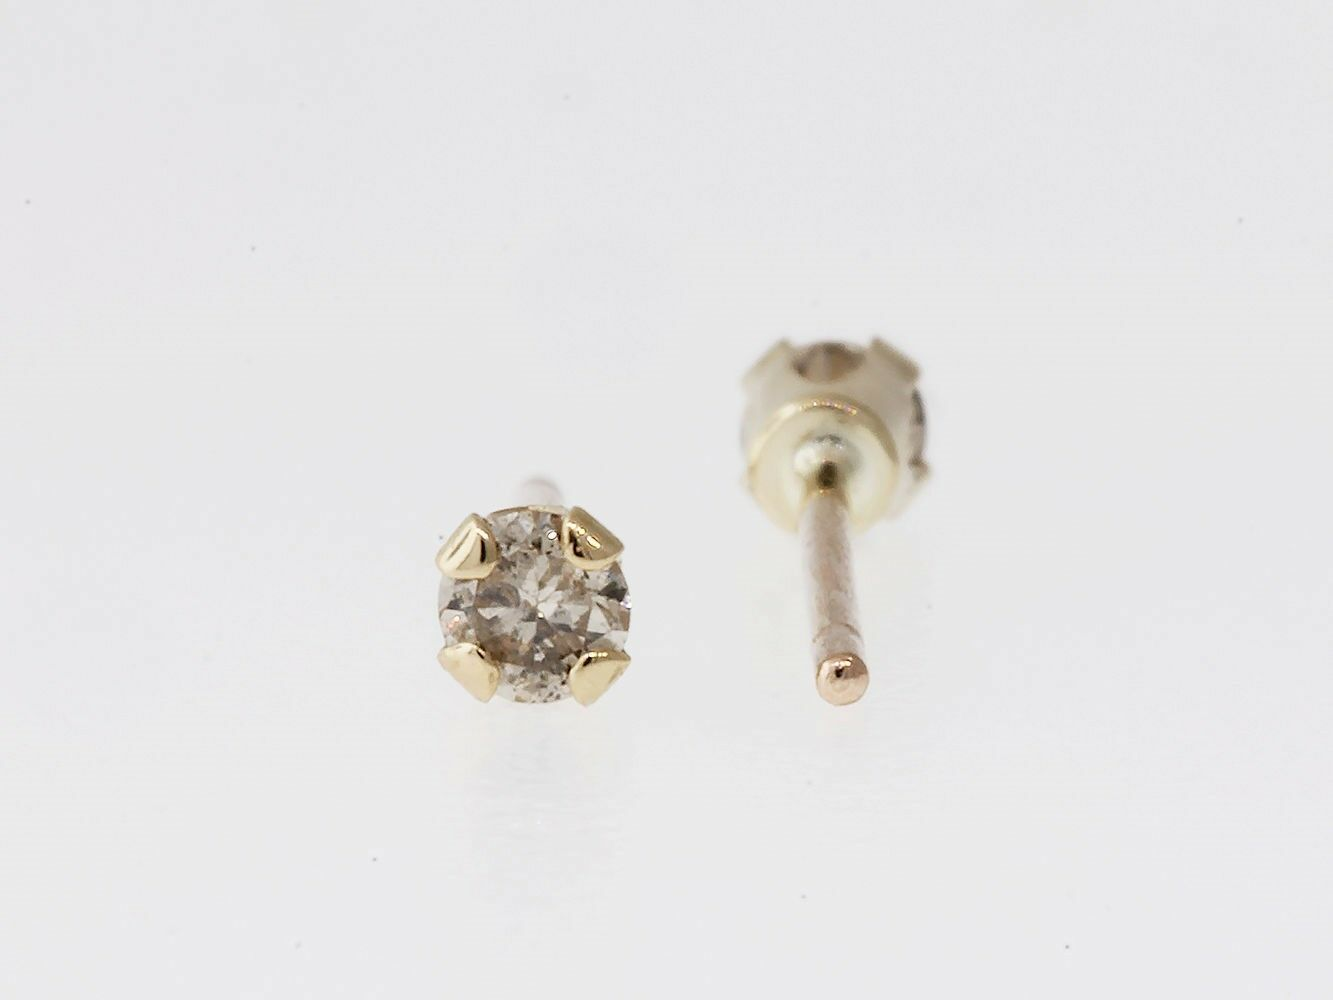 0.10ct Round Cut Diamond Stud Earrings JK I1 10k Yellow gold Clearance 4-Prong